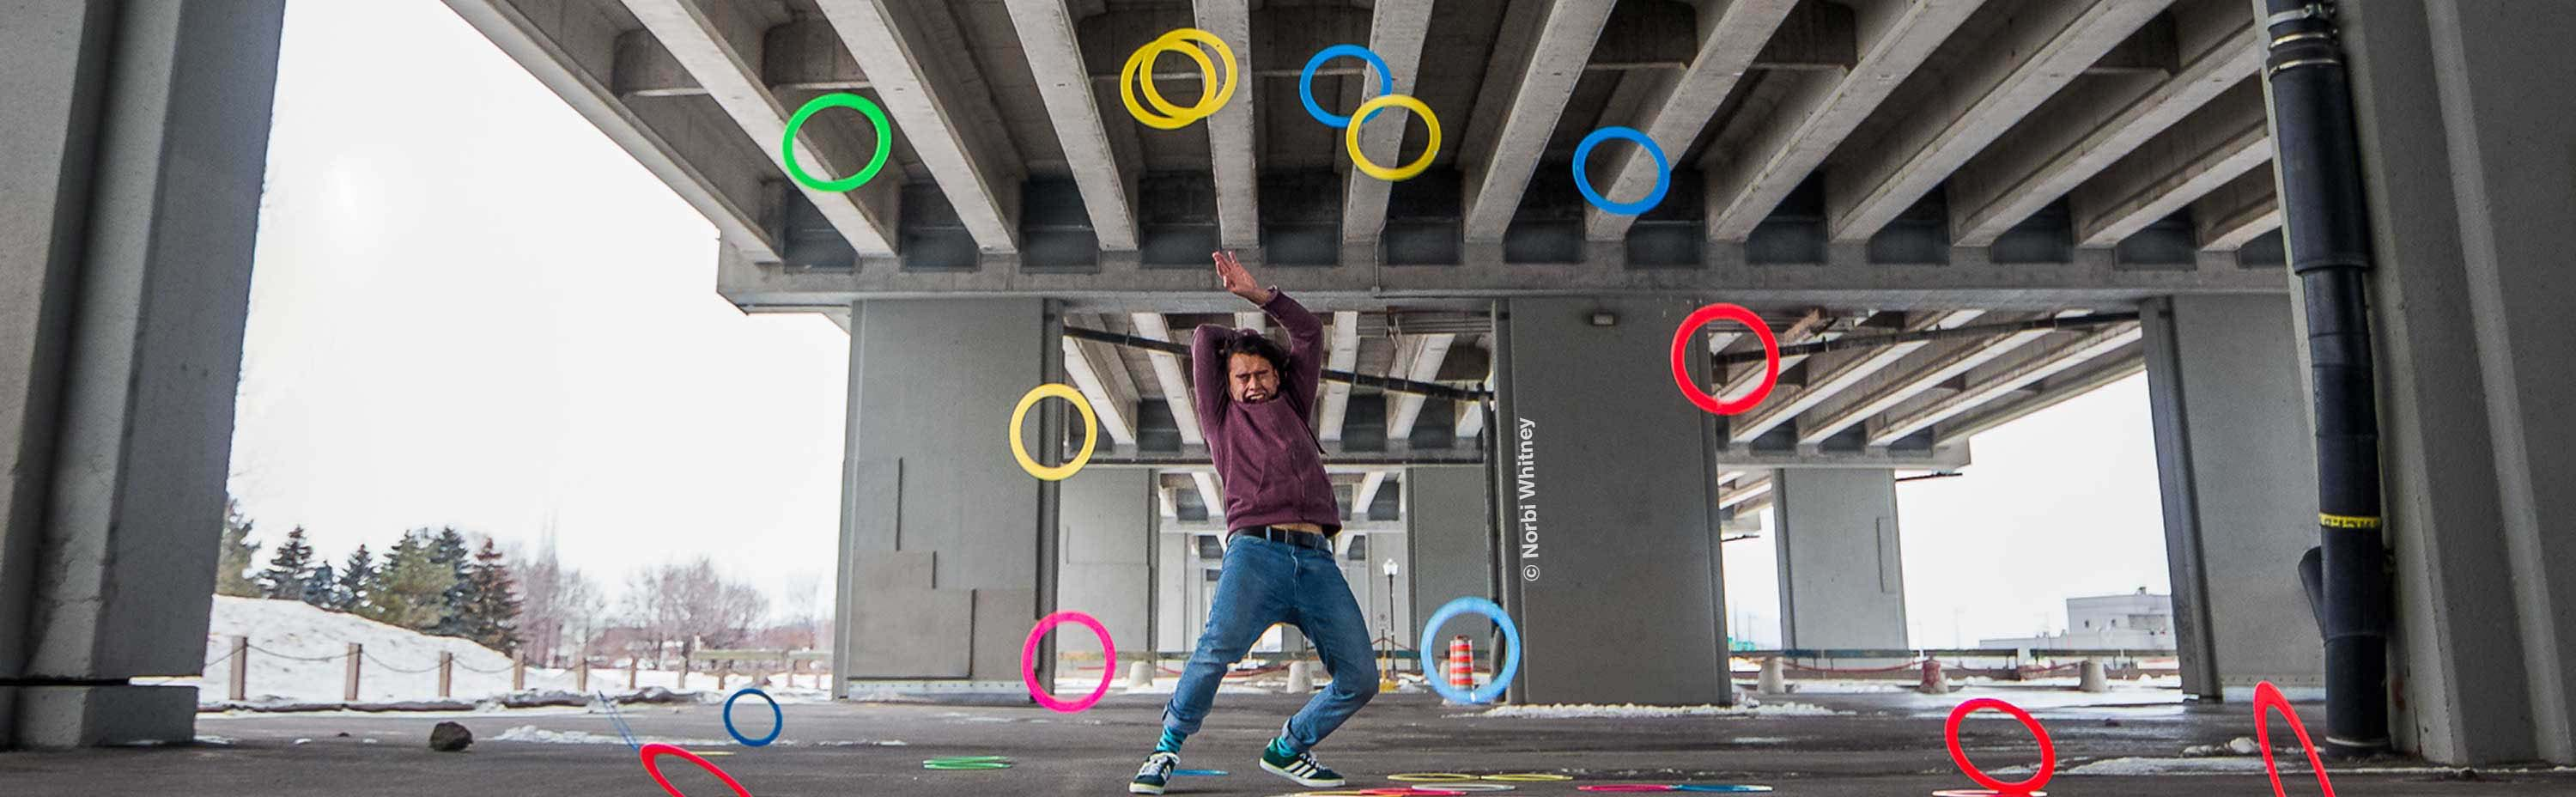 Juggling Rings